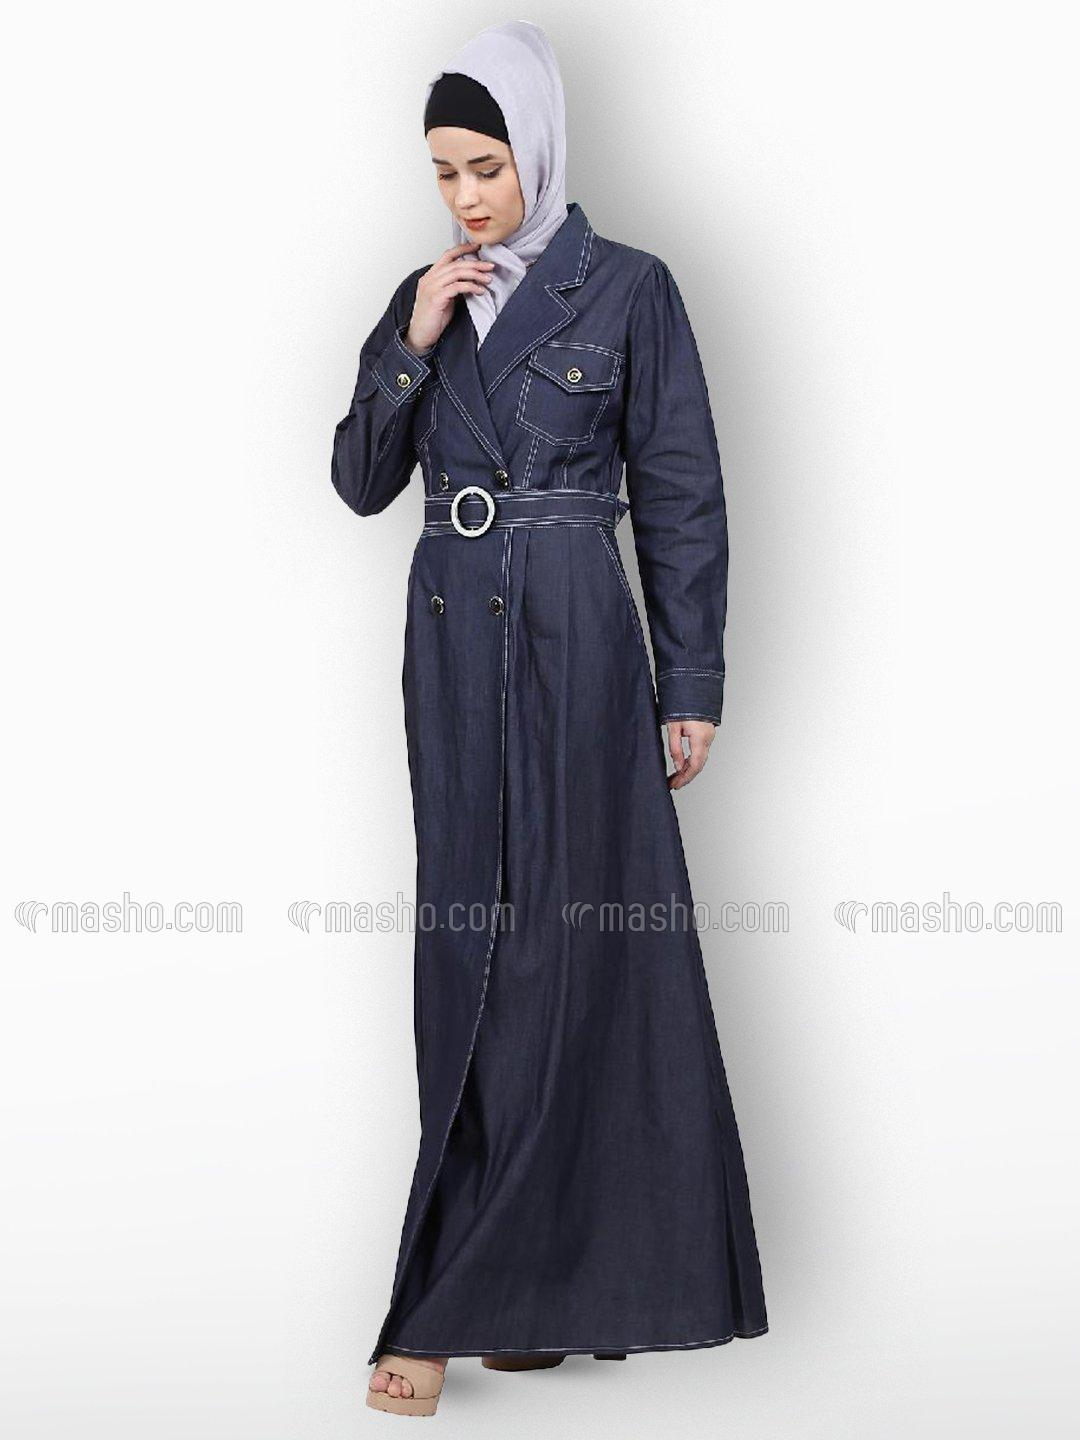 Denim Cot Abaya With Design Of Pockets And Belt With Buttons On Front In Denim Blue